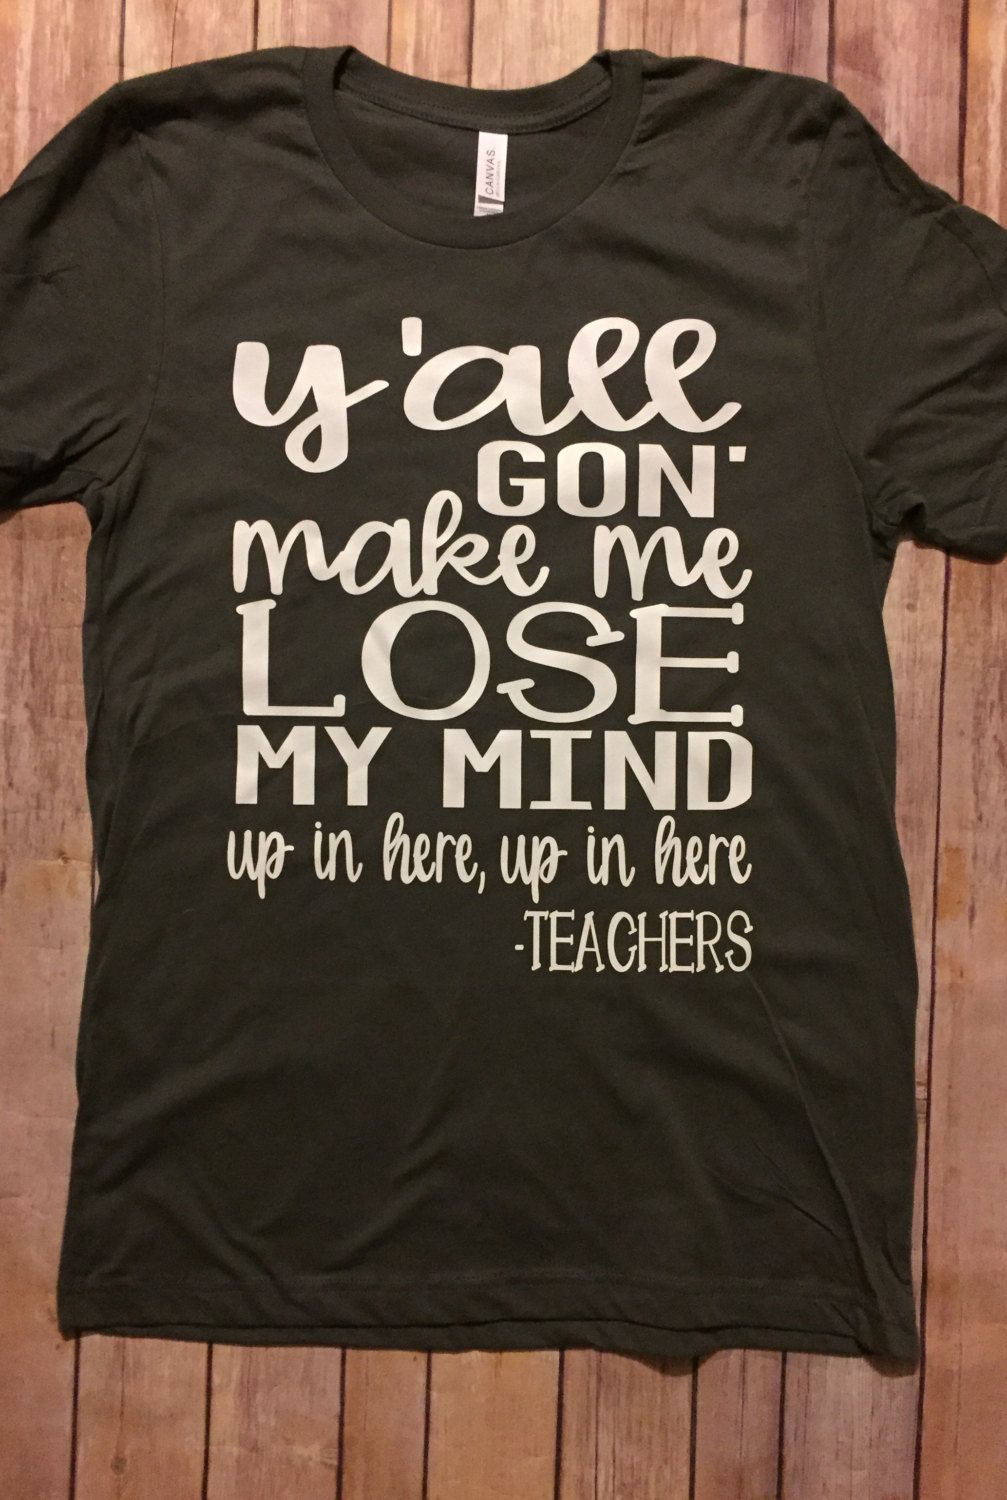 0c47af21251f4 Yall gon' make me lose my mind up in here up in here -Teachers shirt ...